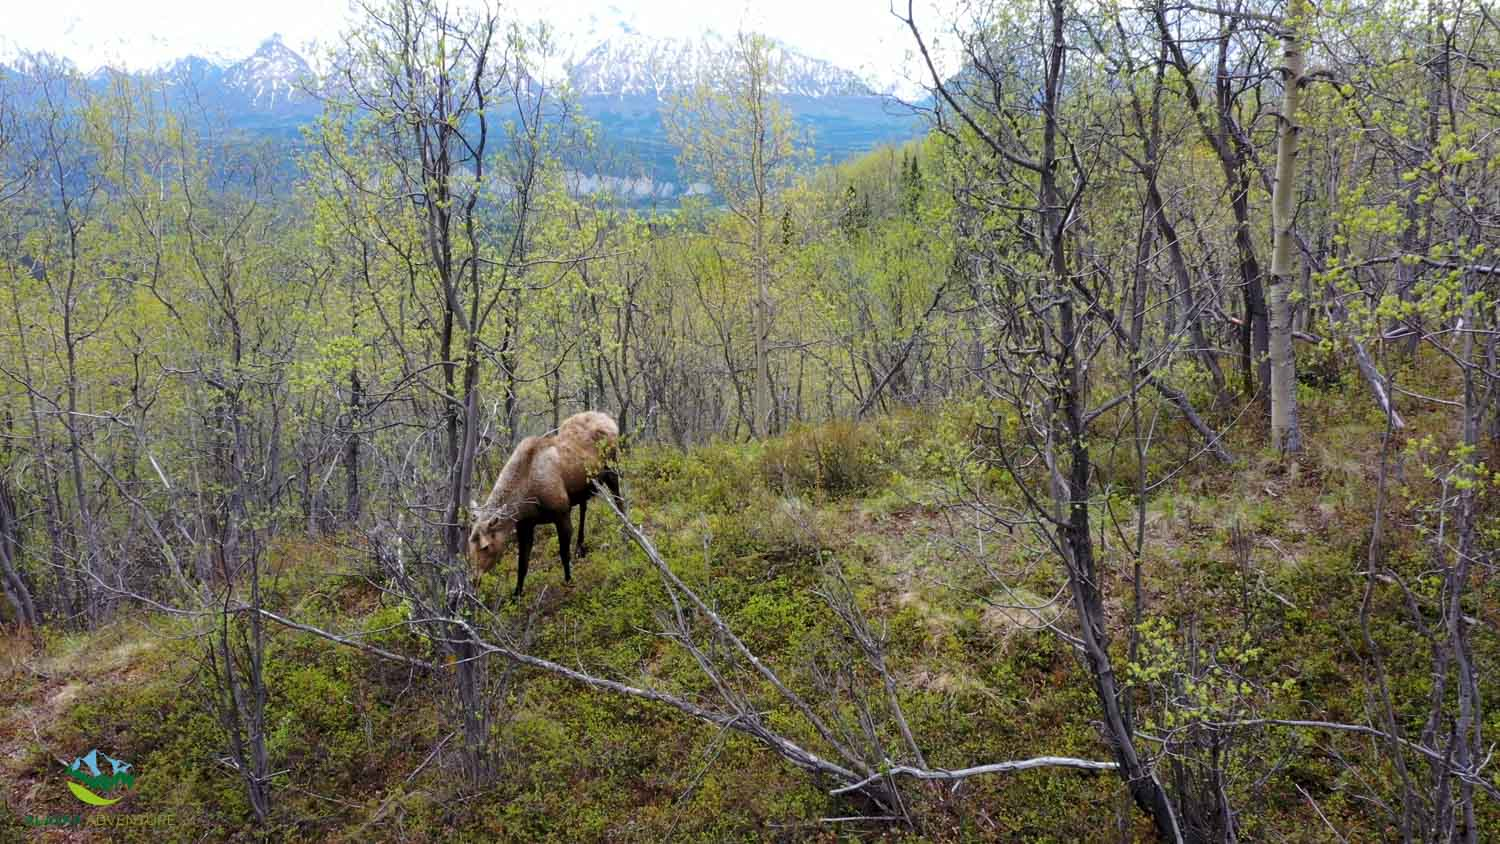 Why We Love the Alaska Moose